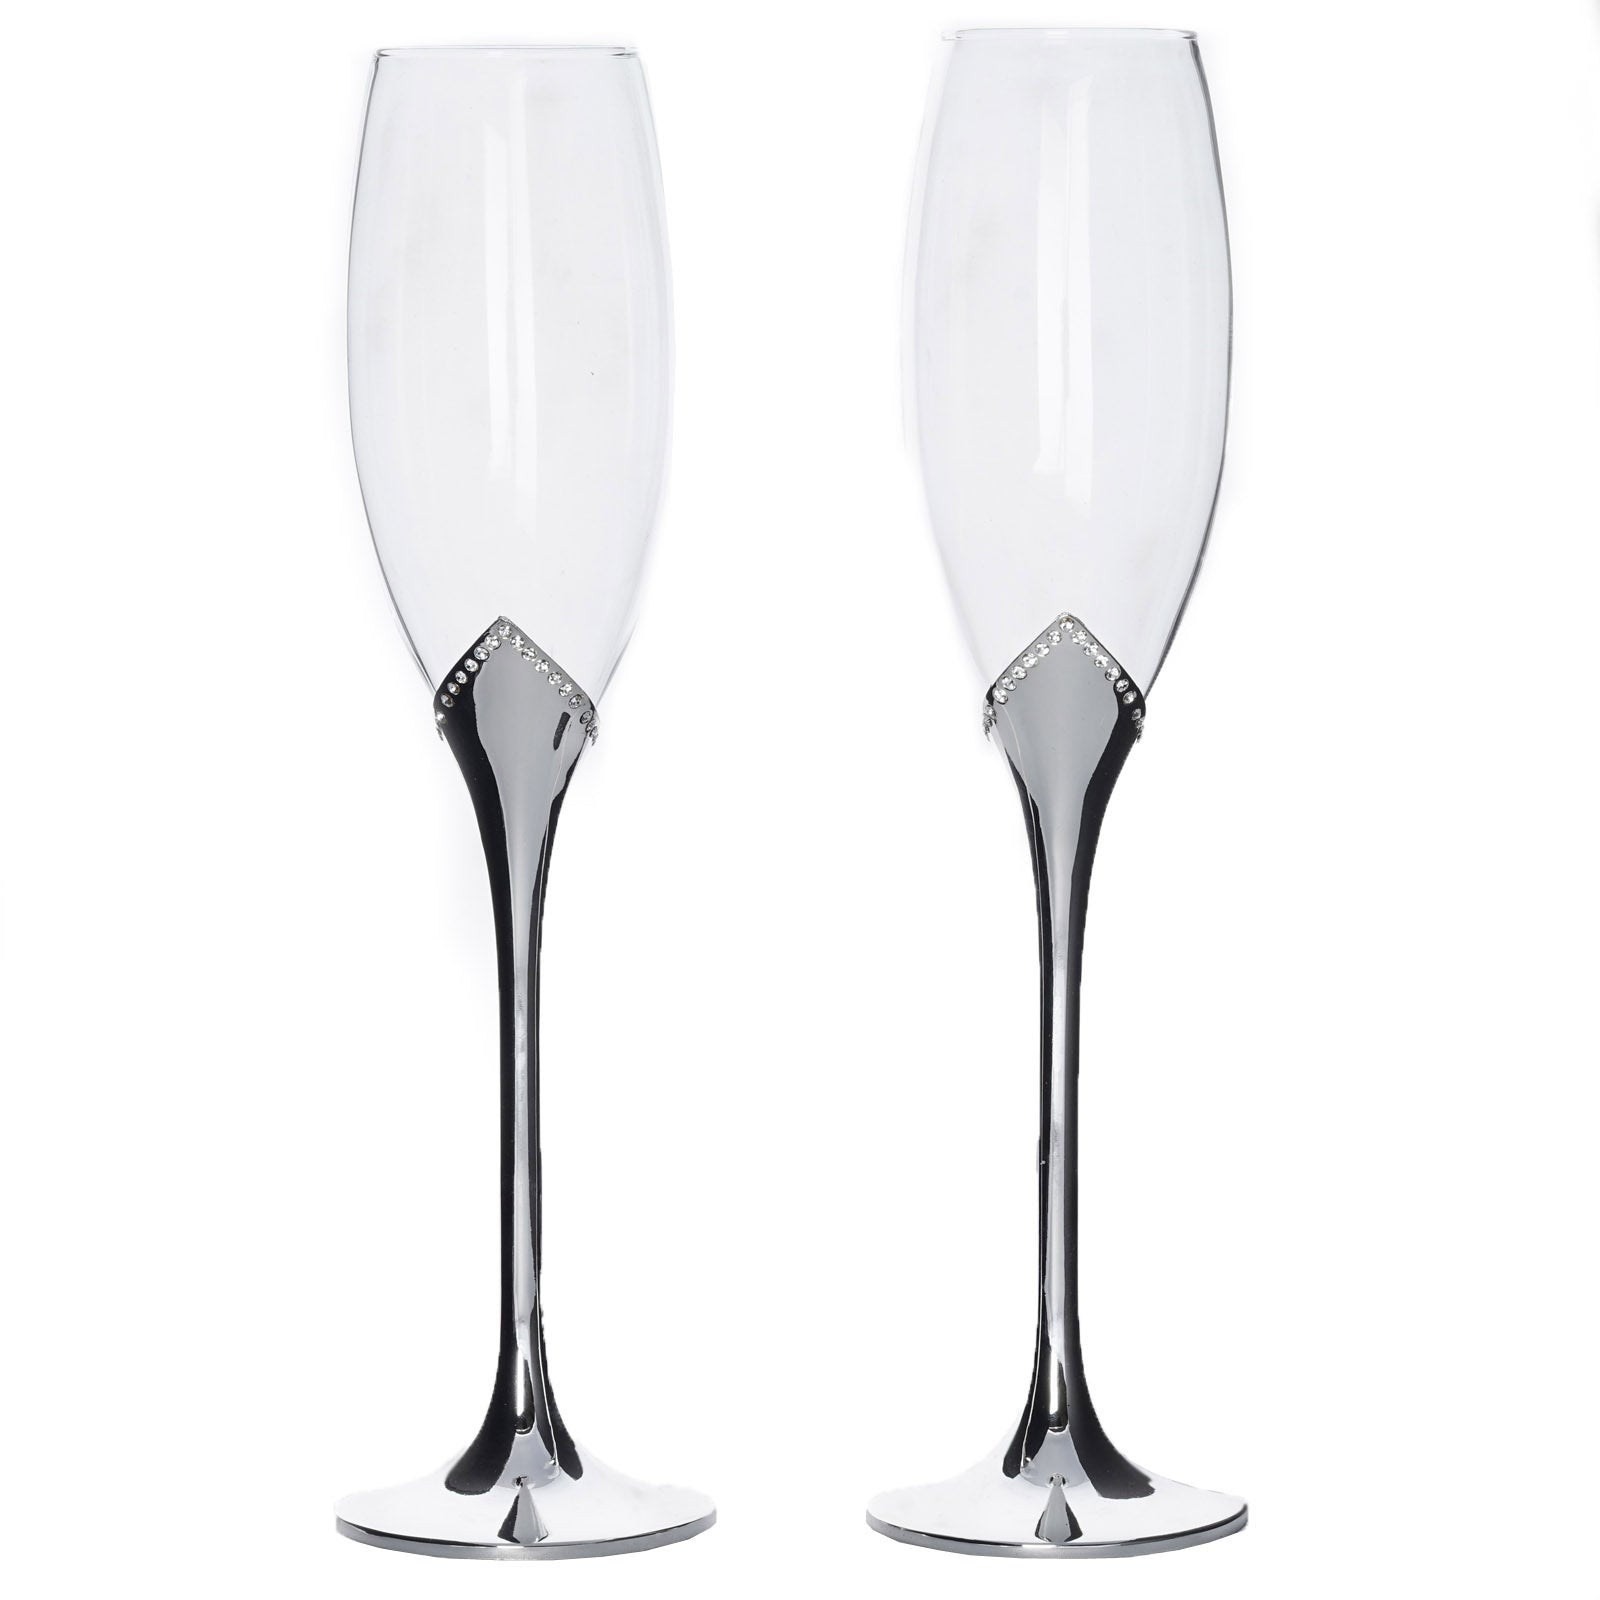 "10 5"" Tall Rhinestone Embedded Silver Sleek Champagne Flute Glass"